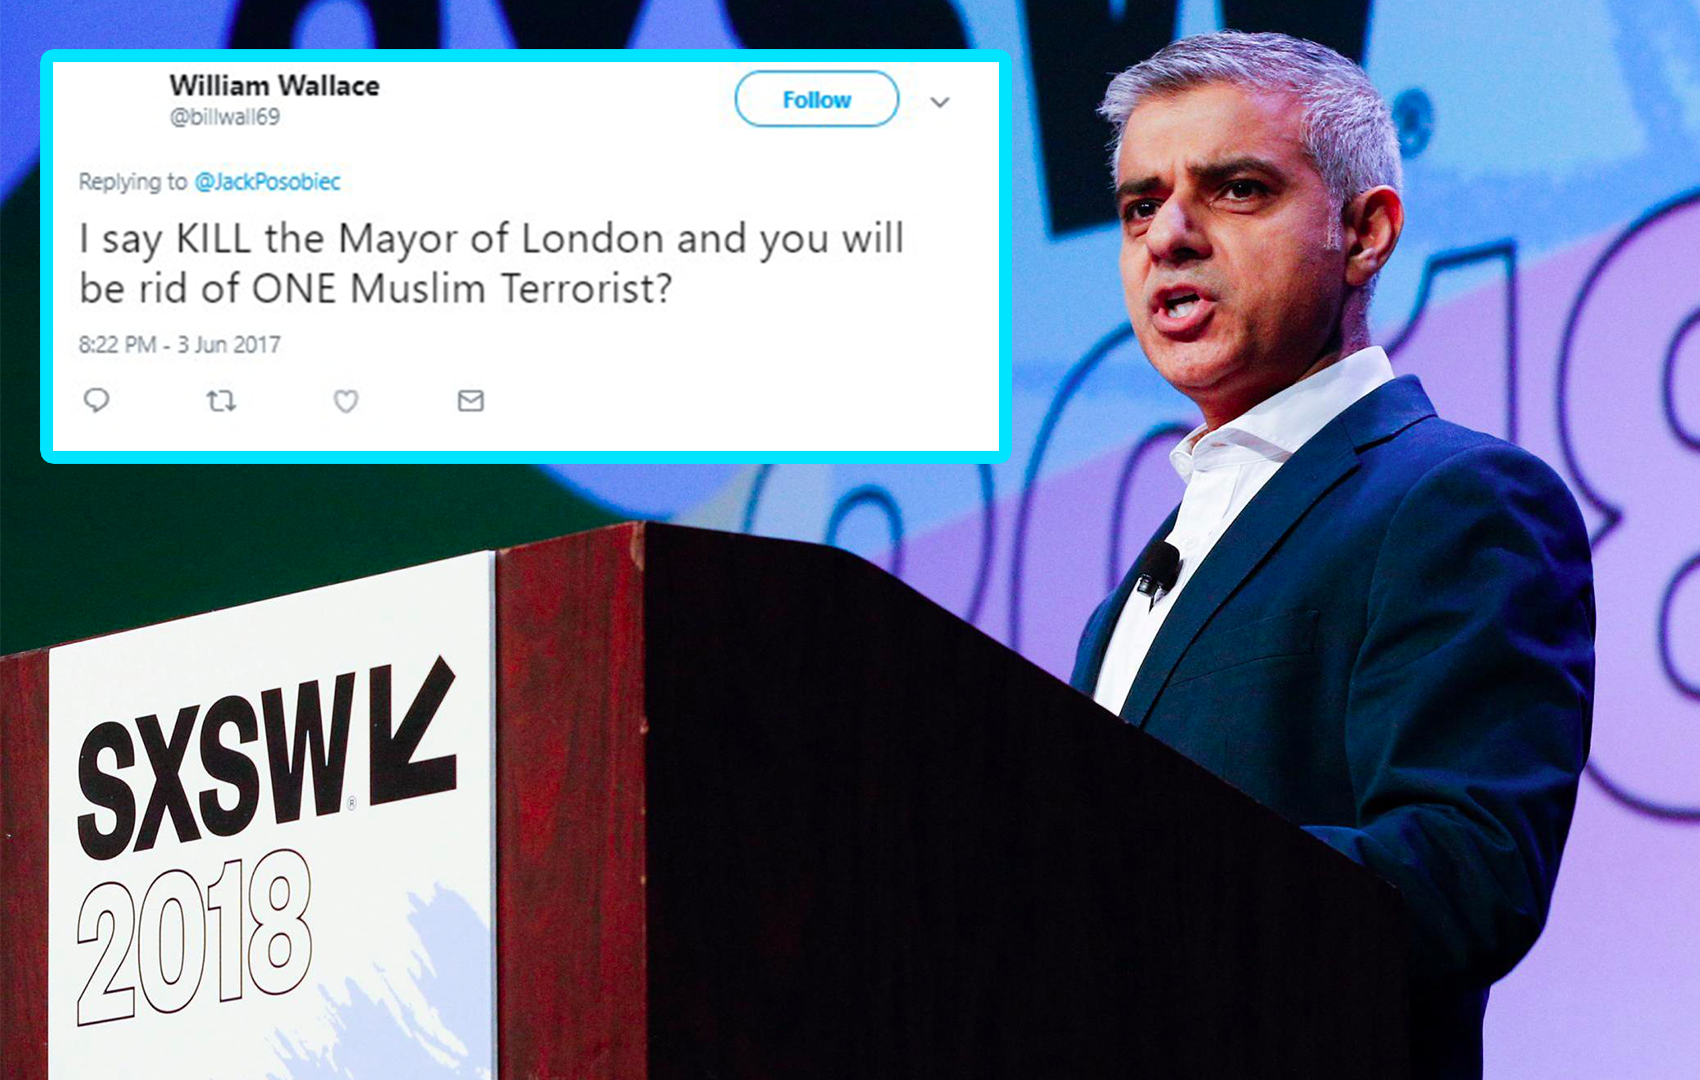 Sadiq Khan speaks out about Islamophobic tweets